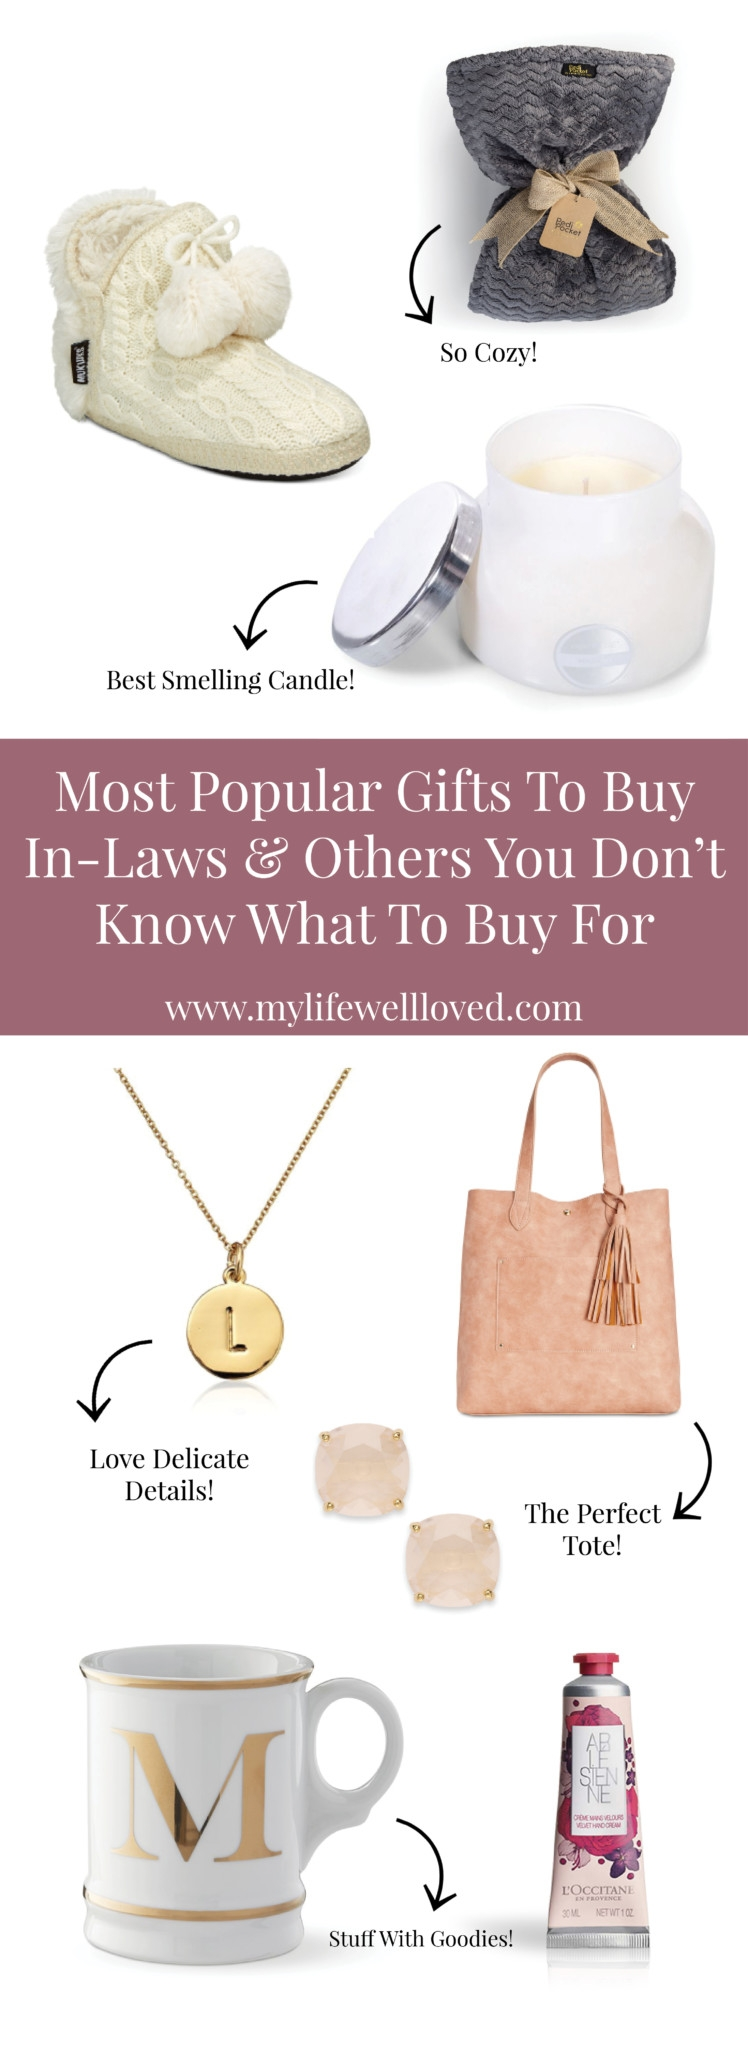 Most Popular Gifts to Buy In-Laws & Others You Dont KNow What to Buy For by alabama blogger heather brown // Best Christmas Gift Ideas featured by top Birmingham lifestyle blog My Life Well Loved